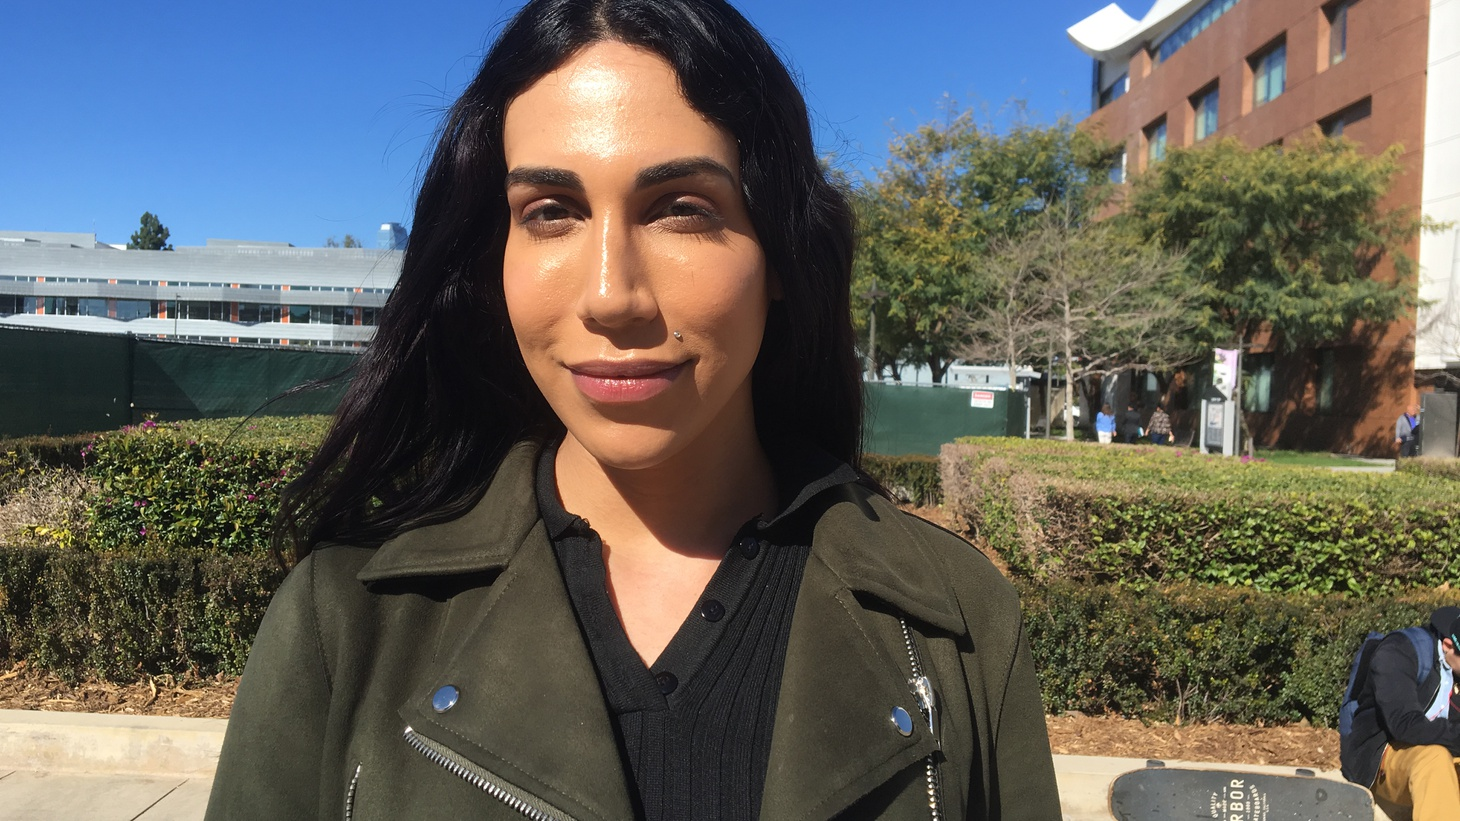 We visit a job fair in South LA set up for transgender people who often face unemployment and workplace discrimination and harassment. Are today's employers trying harder to foster a more inclusive workplace?